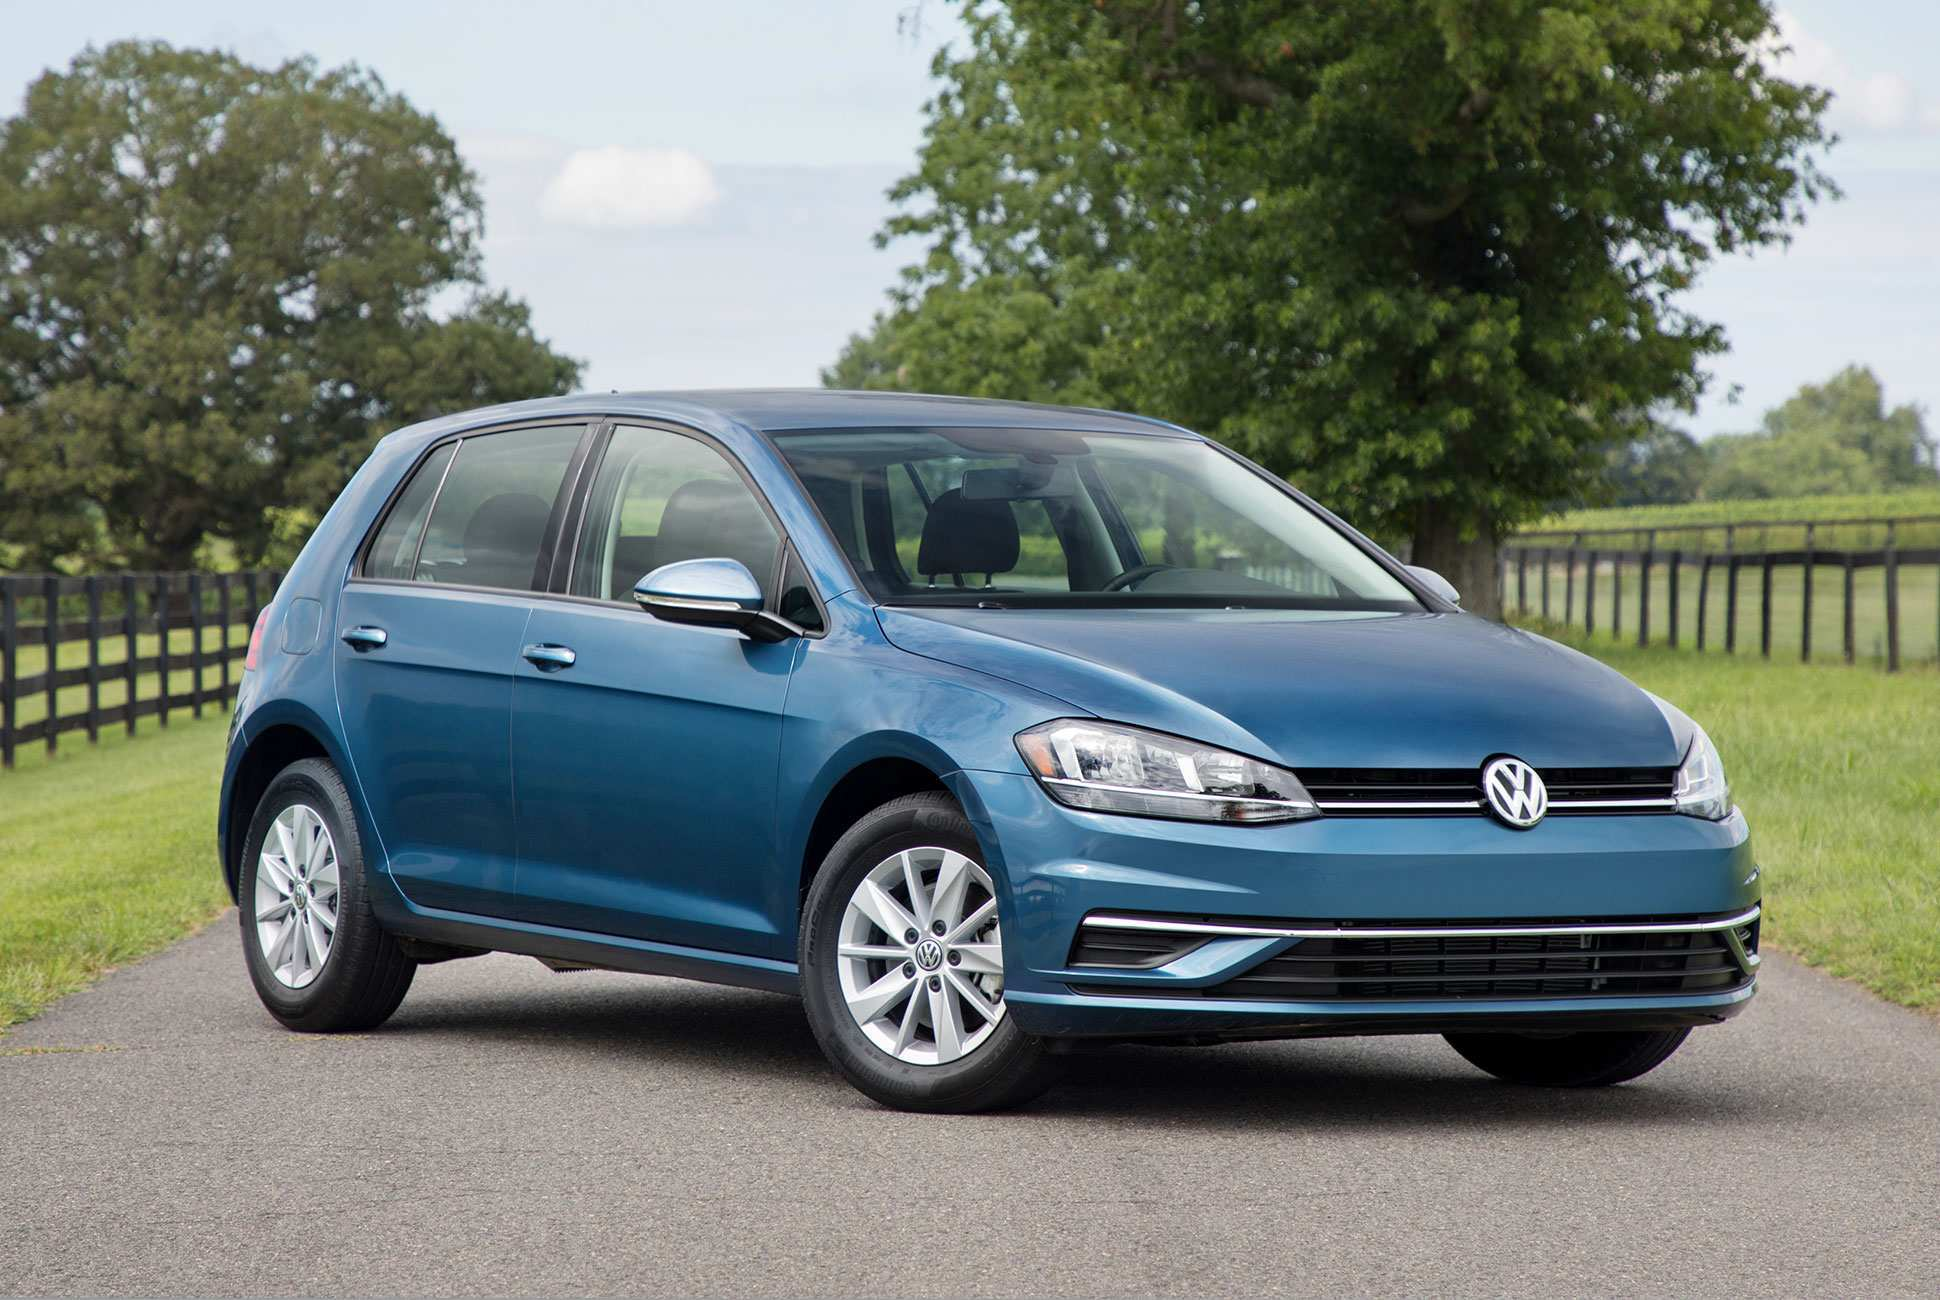 98 The Volkswagen Golf Mk8 2020 Concept and Review